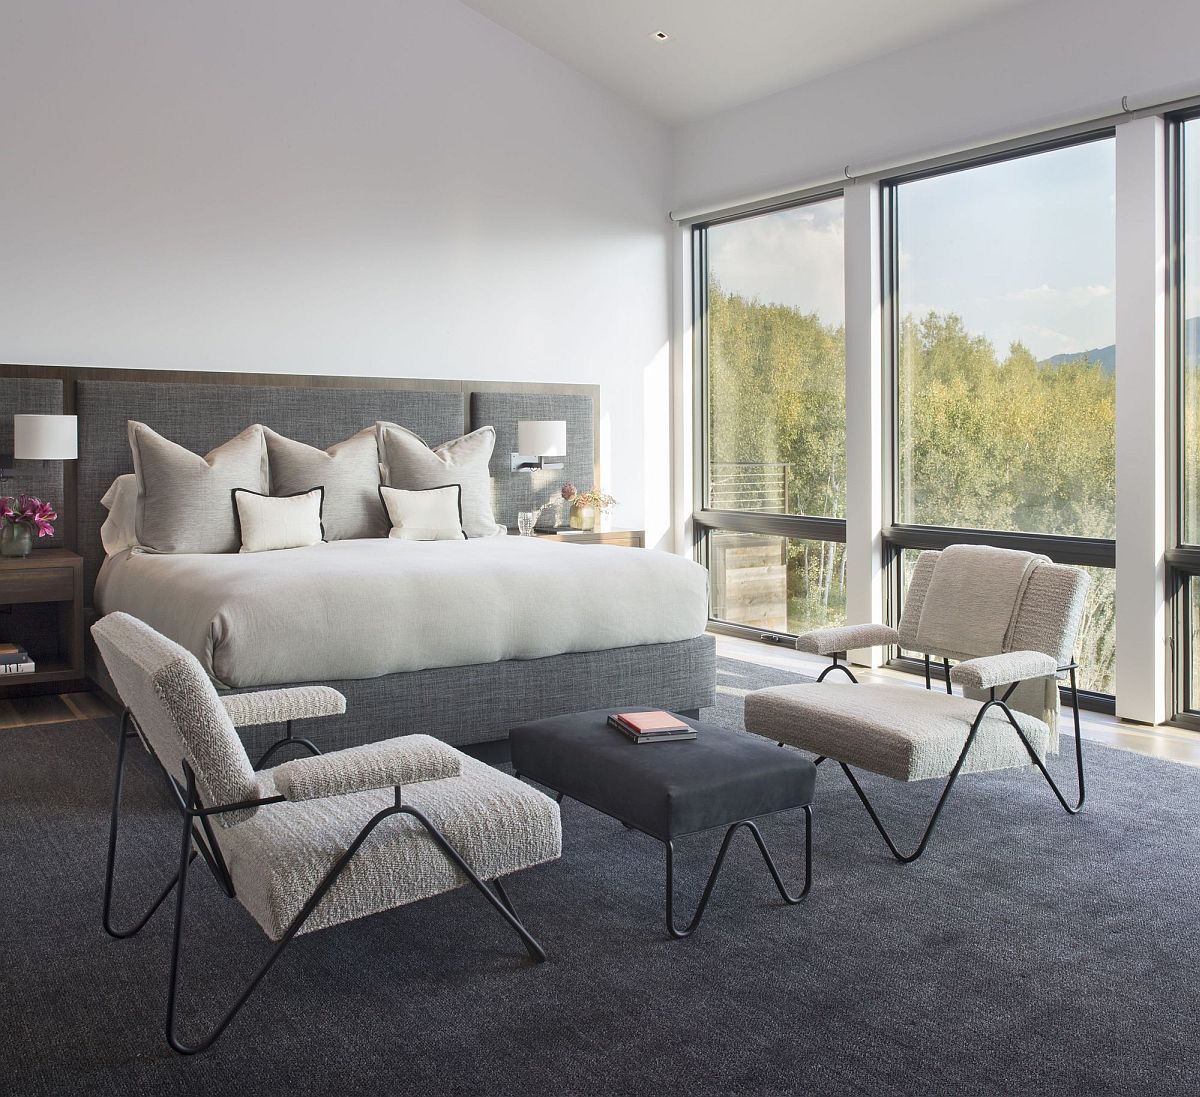 Modern-gray-and-white-bedroom-with-fabulou-mountain-views-in-the-distance-45701